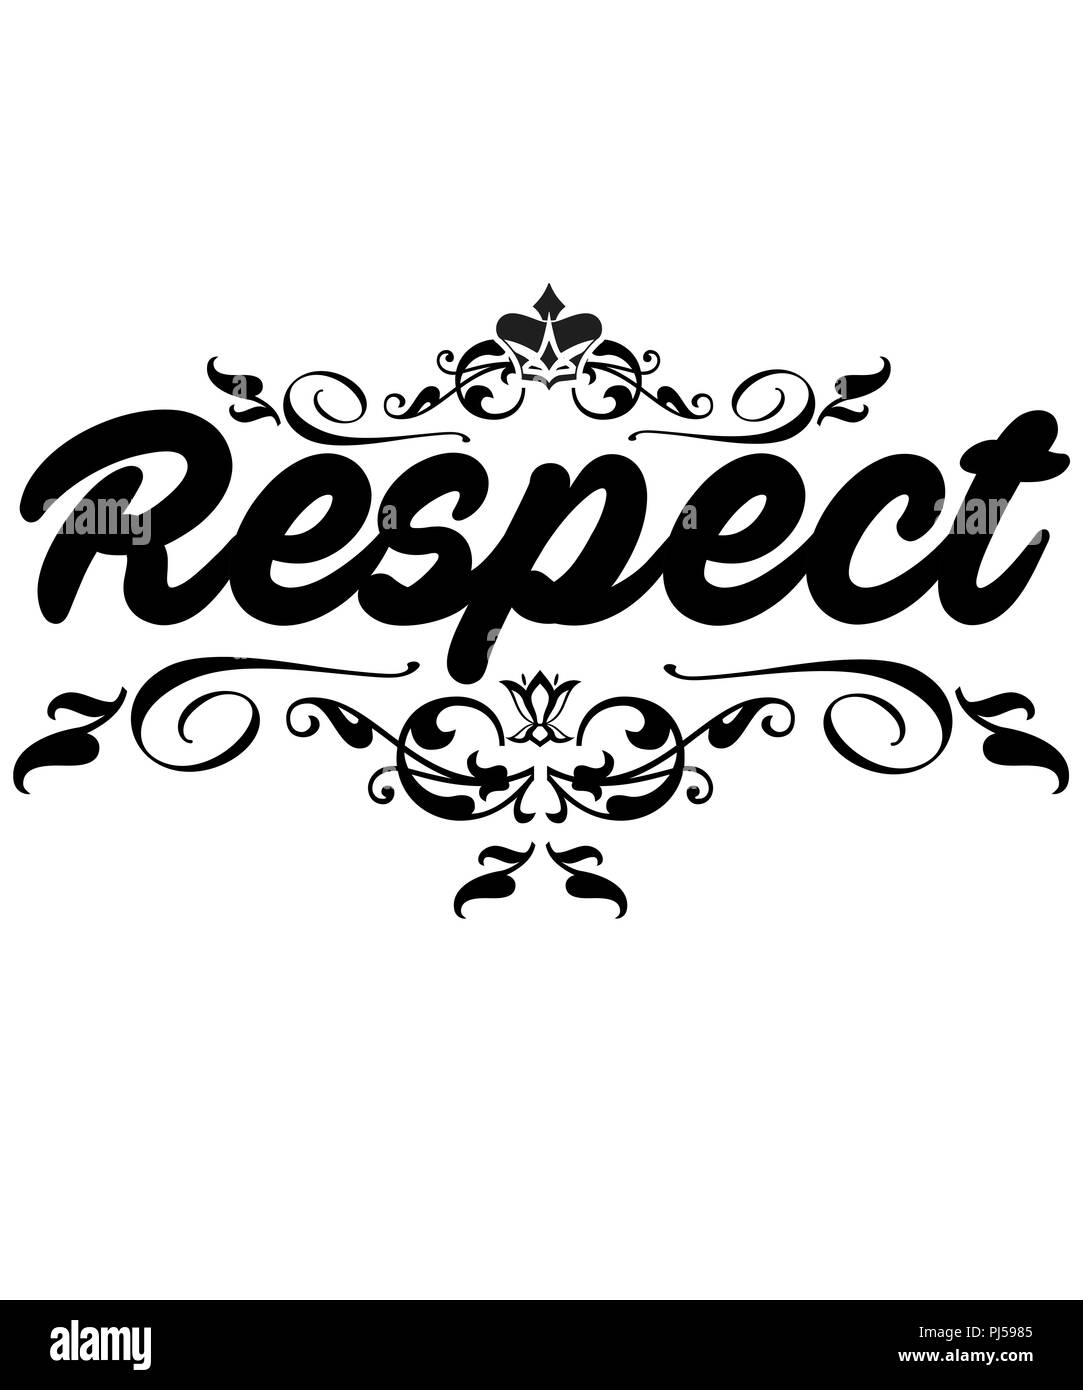 Respect graphic design illustration with design swirls on a white background.  Makes a great wall art too. - Stock Image